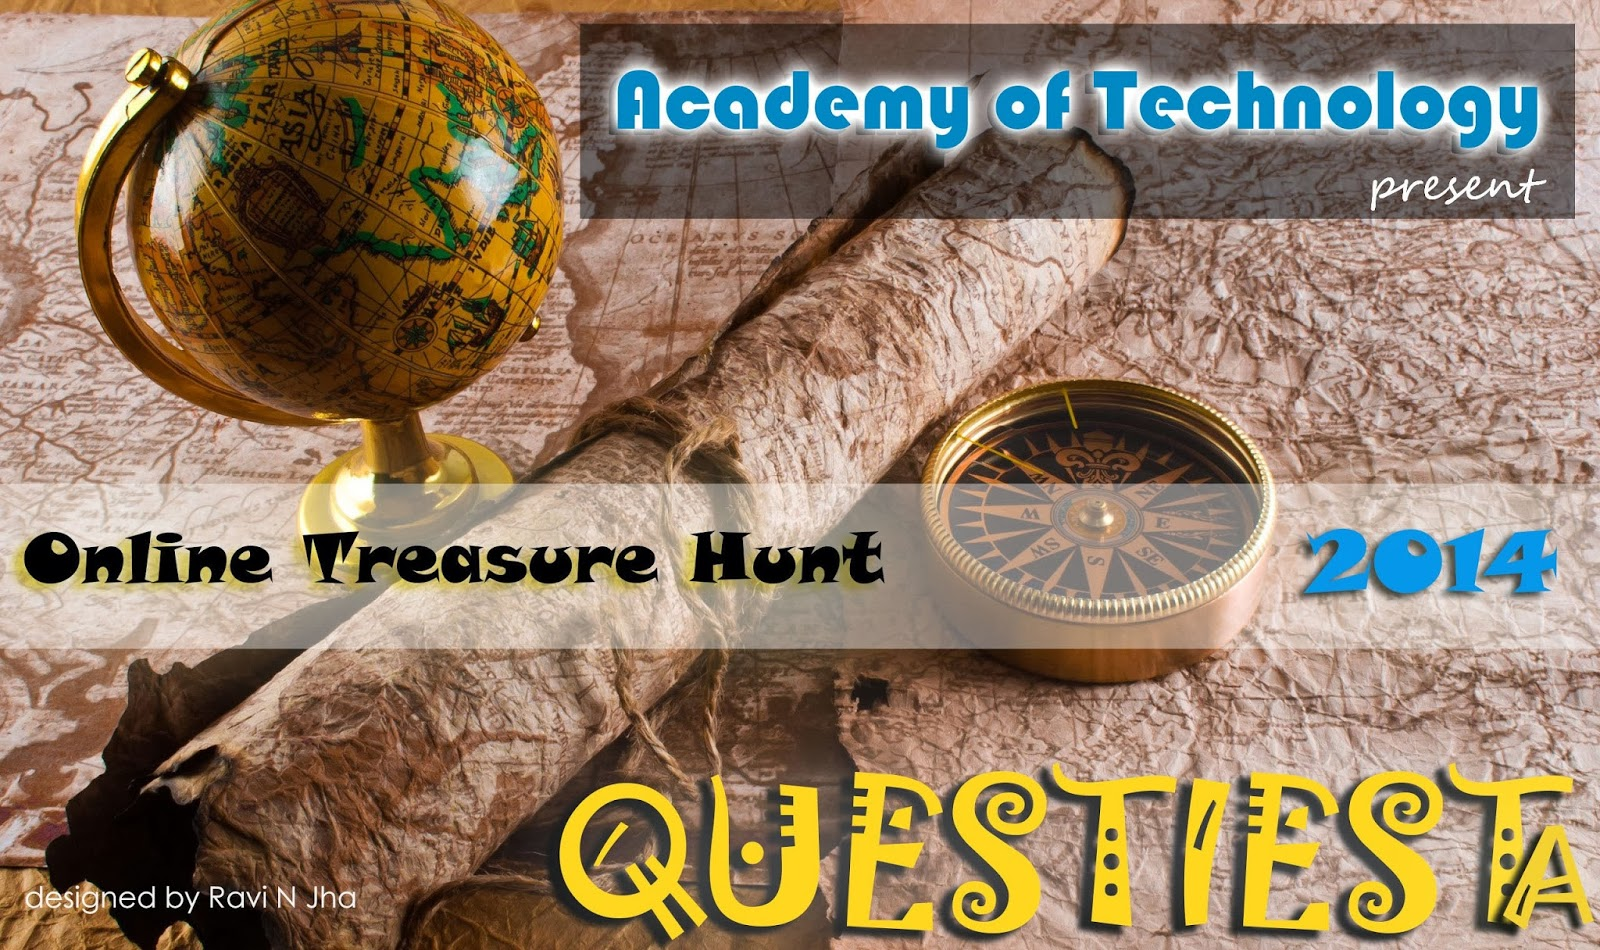 online treasure hunt